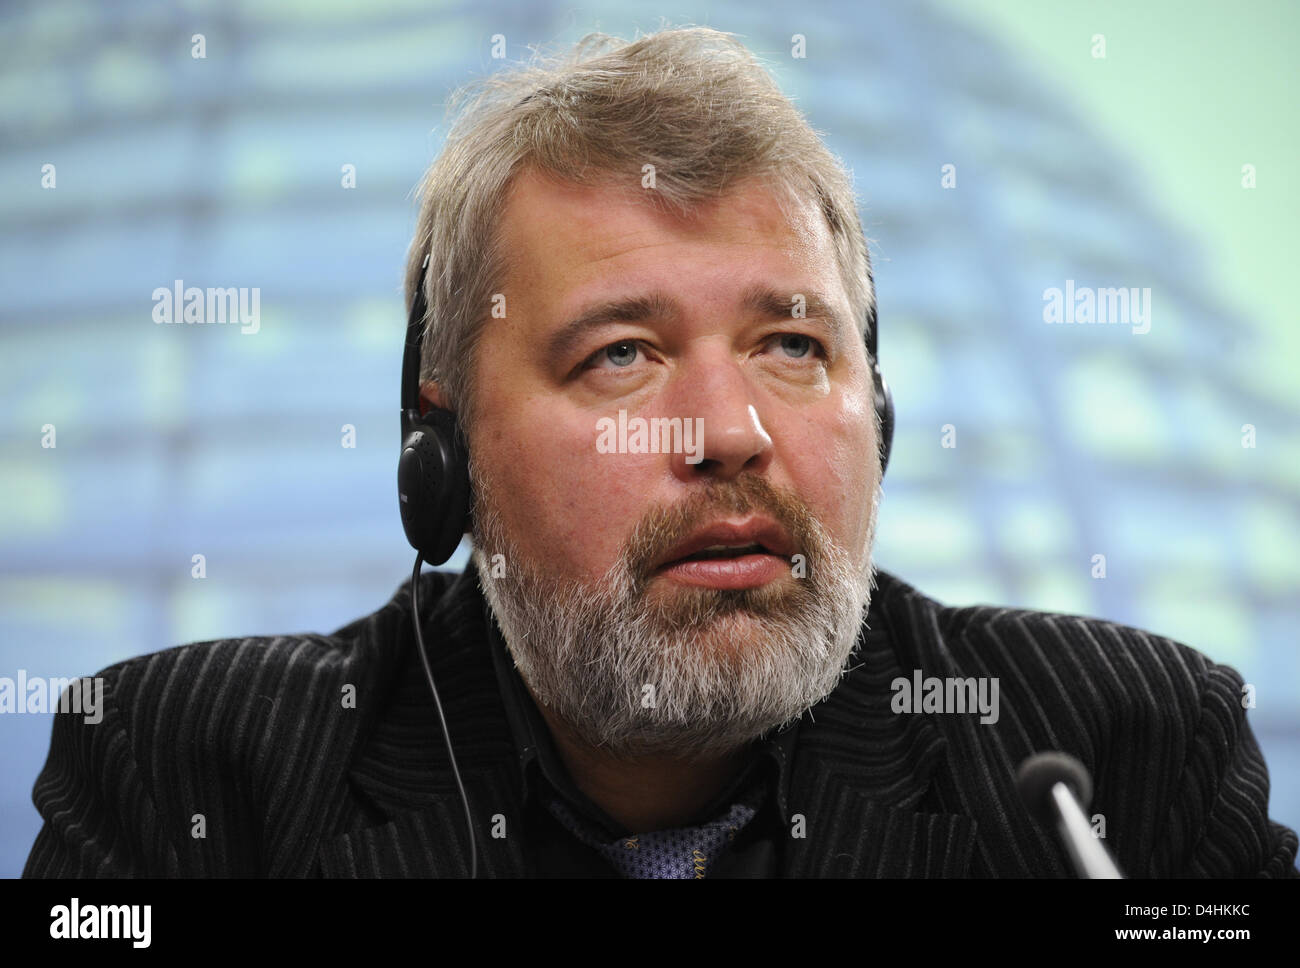 Dmitry Muratov, chief editor of Russian newspaper ?Novaya Gazeta?, gives information about current events in Moscow - Stock Image